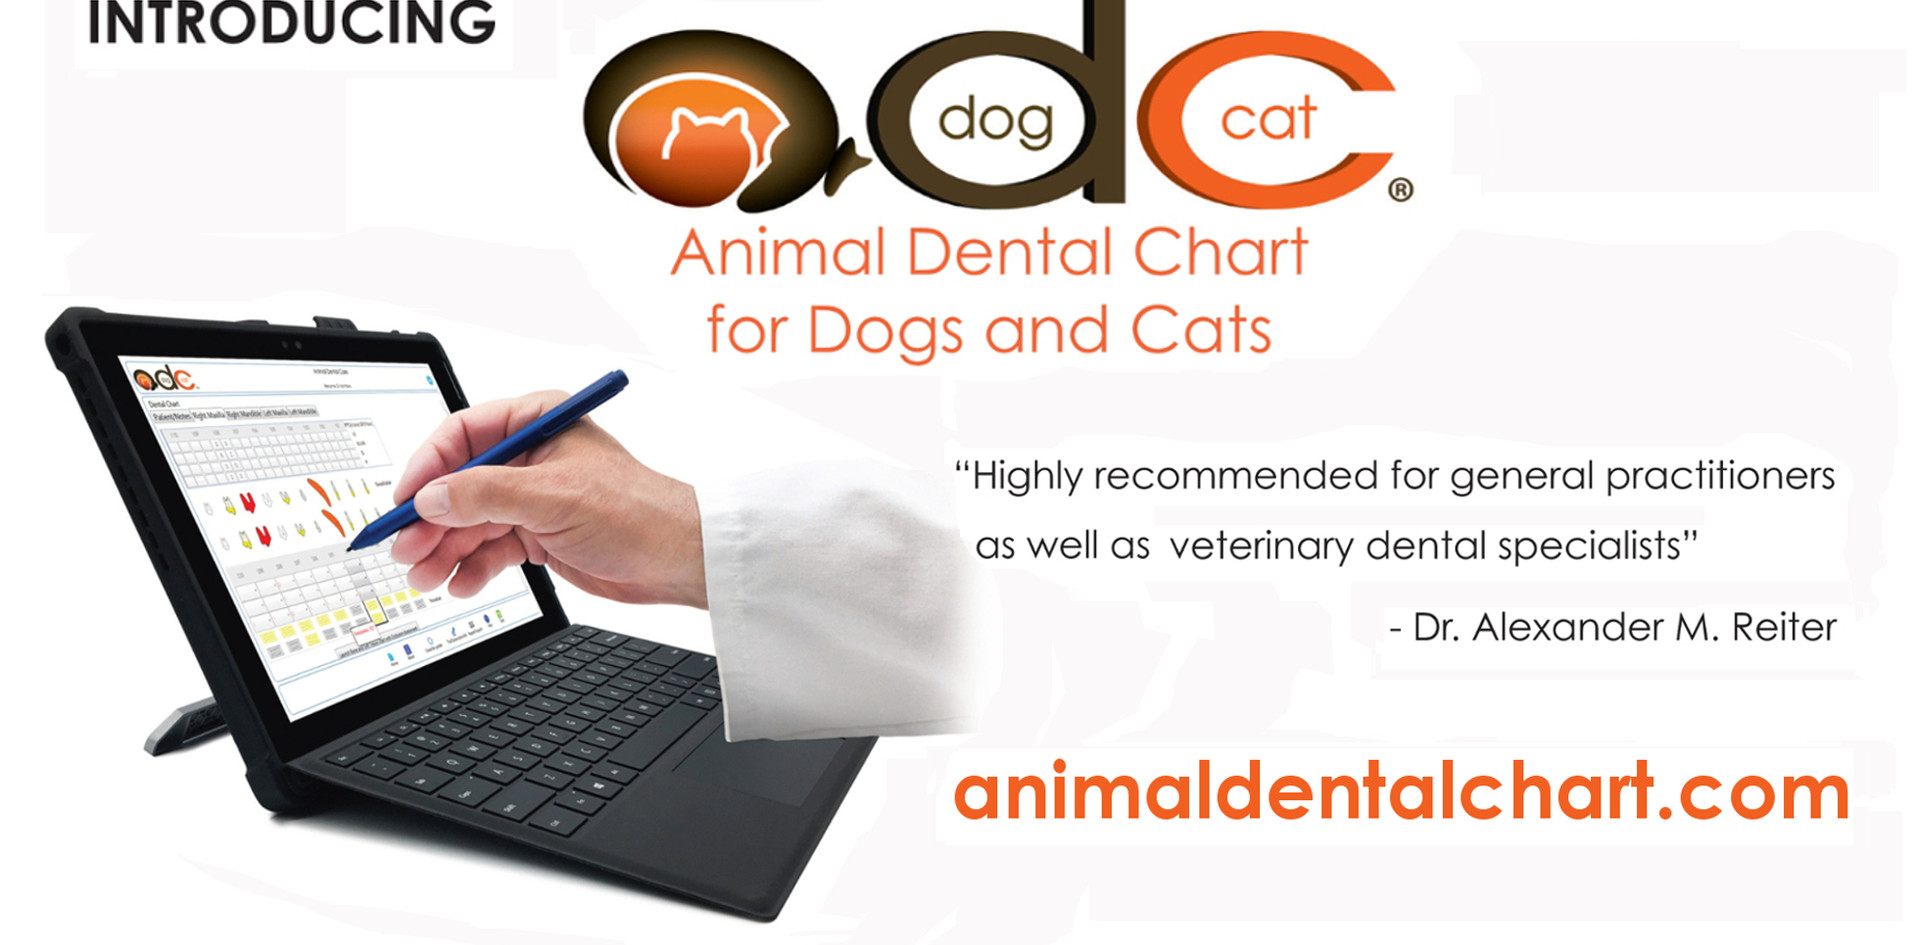 Animal Dental Chart for Dogs and Cats